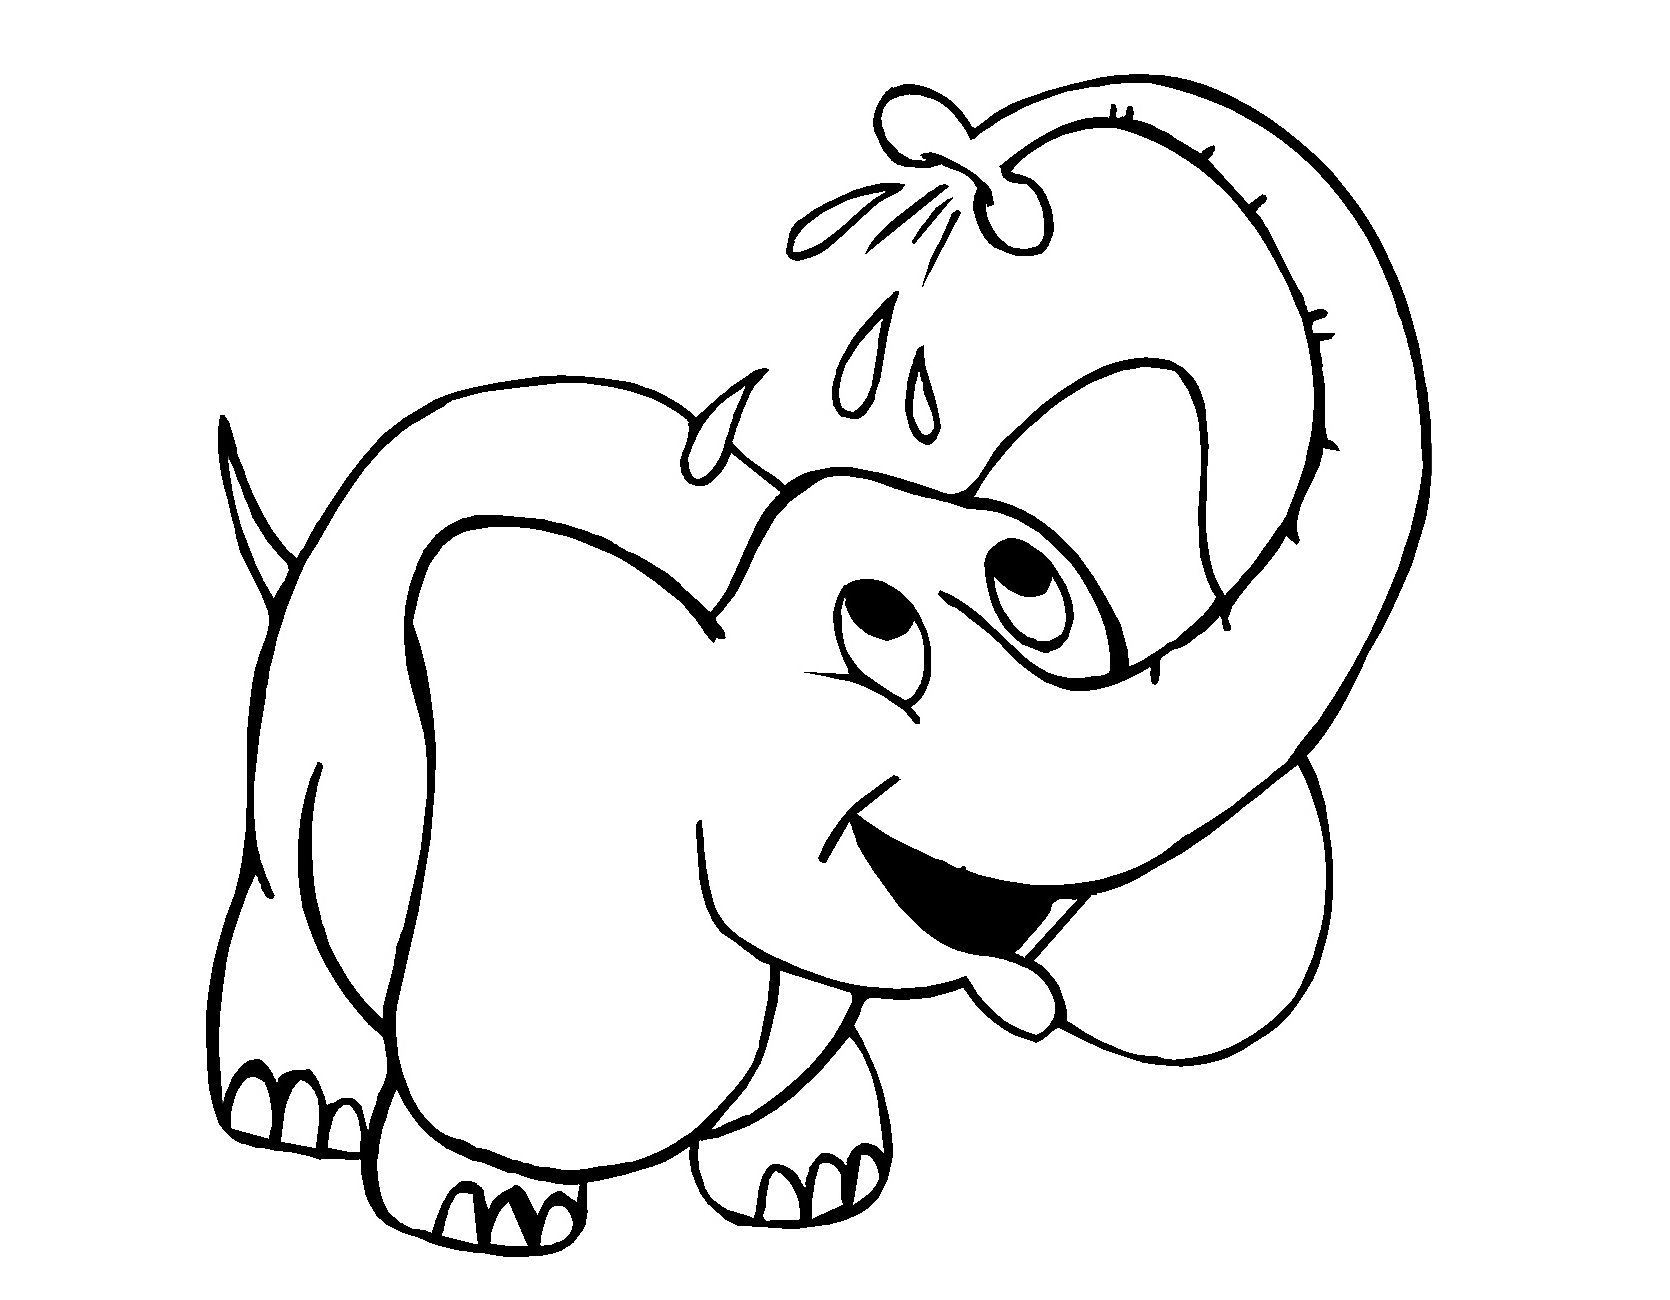 - Free Printable Elephant Coloring Pages - Kids-AusmalbilderTV